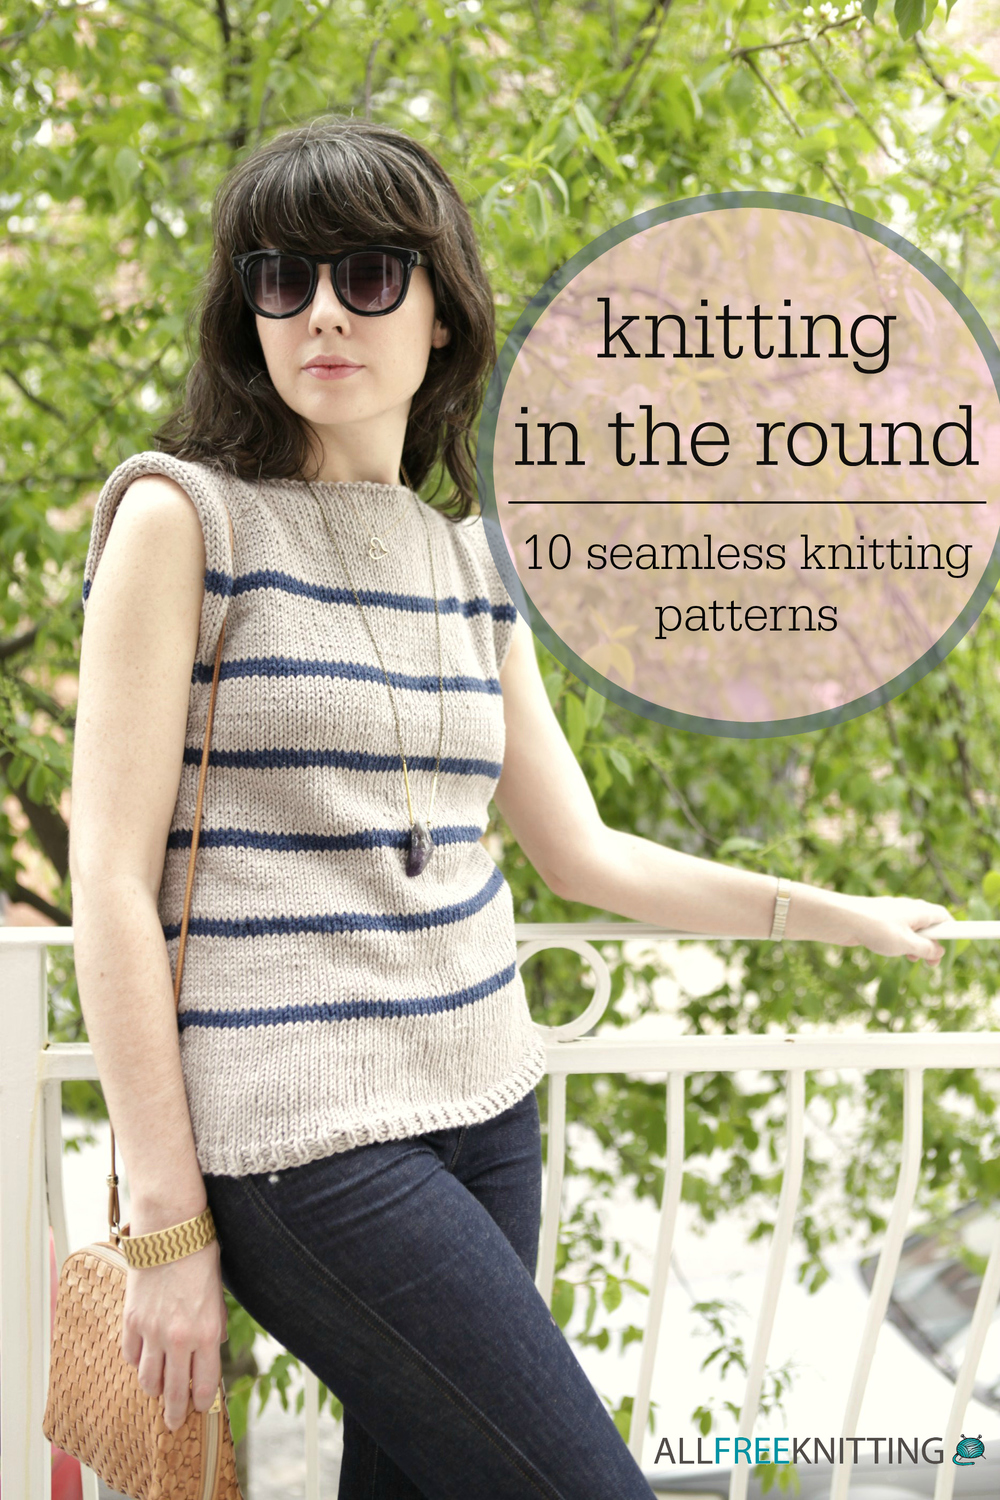 Knitting Pattern In The Round : Knitting in the Round: 10 Seamless Knitting Patterns AllFreeKnitting.com